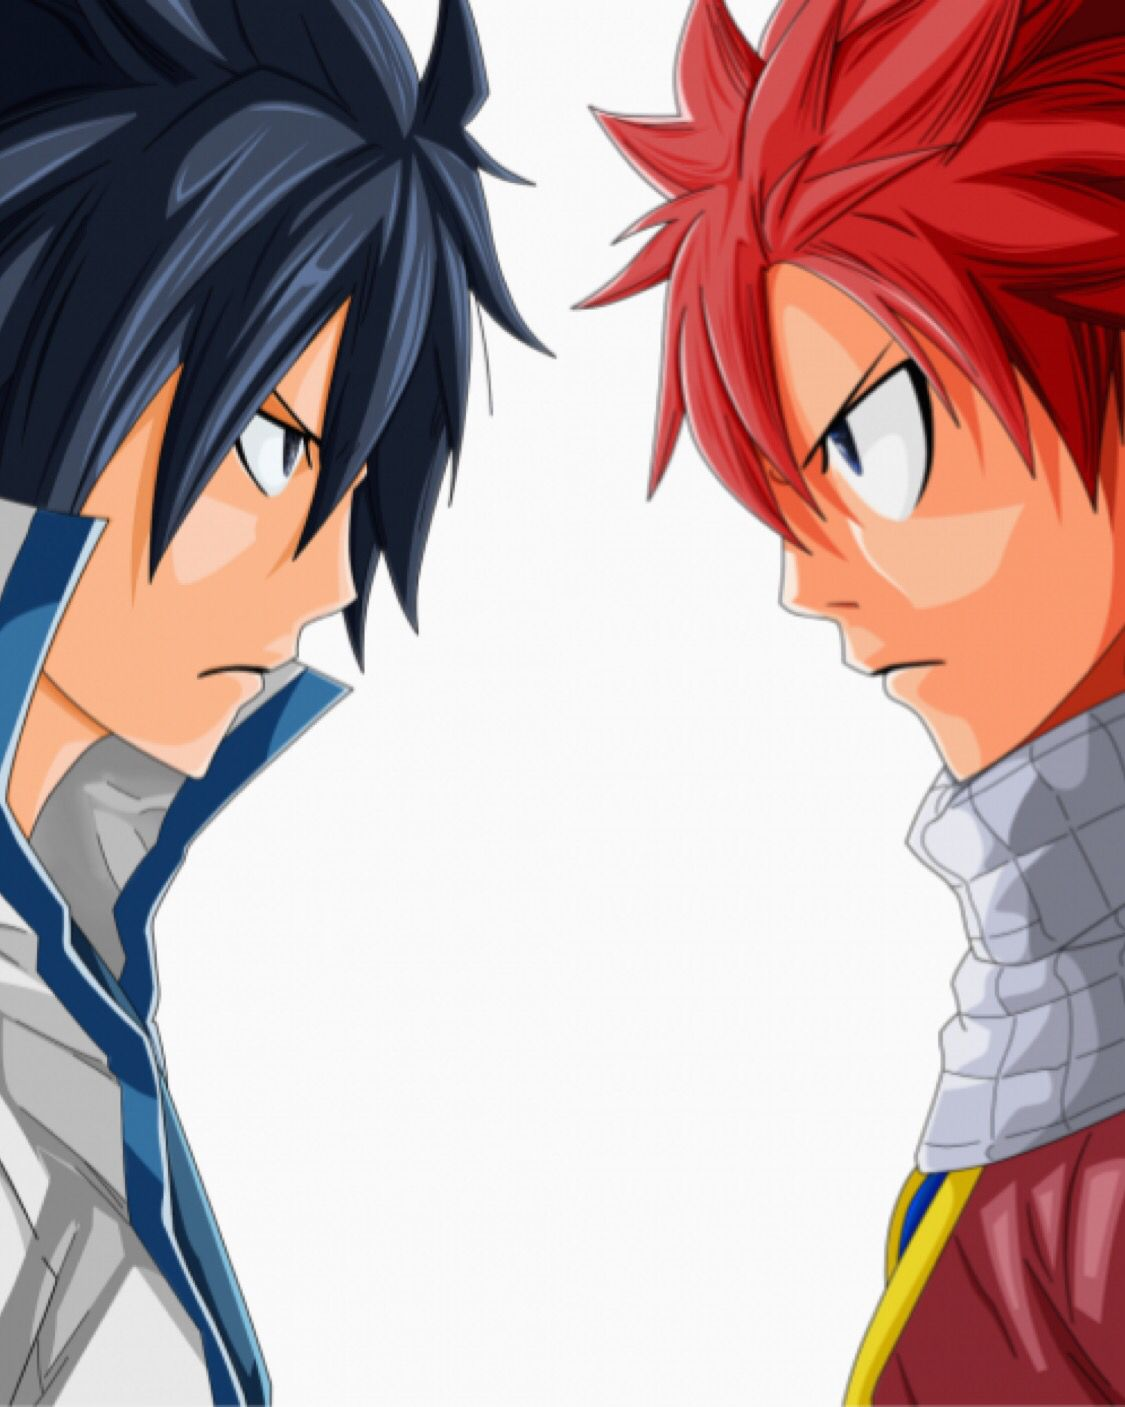 Gray Fullbuster and Natsu Dragneel    Fairy Tail   Fairy ...  Gray Fullbuster And Natsu Dragneel